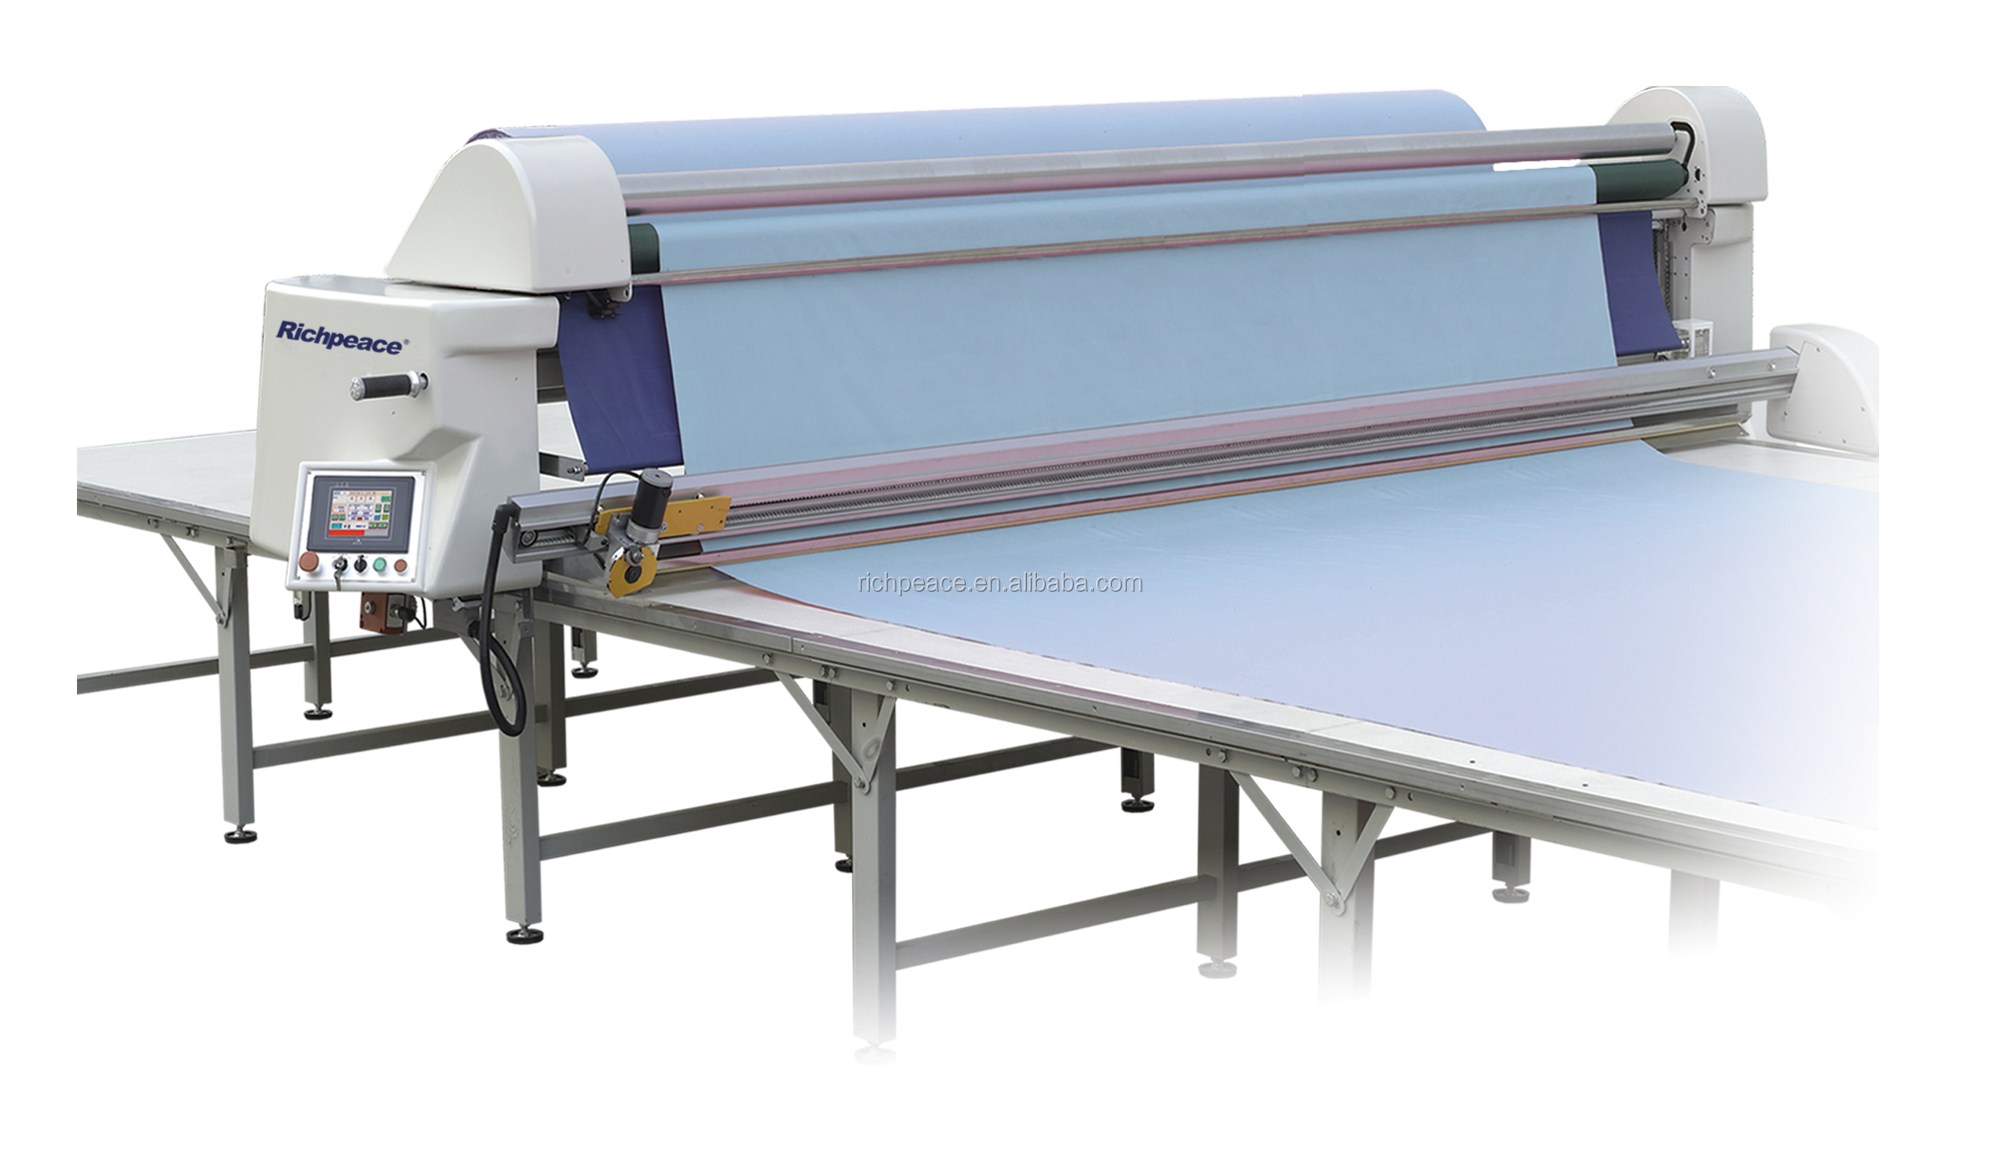 Richpeace Home Textil Automatic Spreading Machine